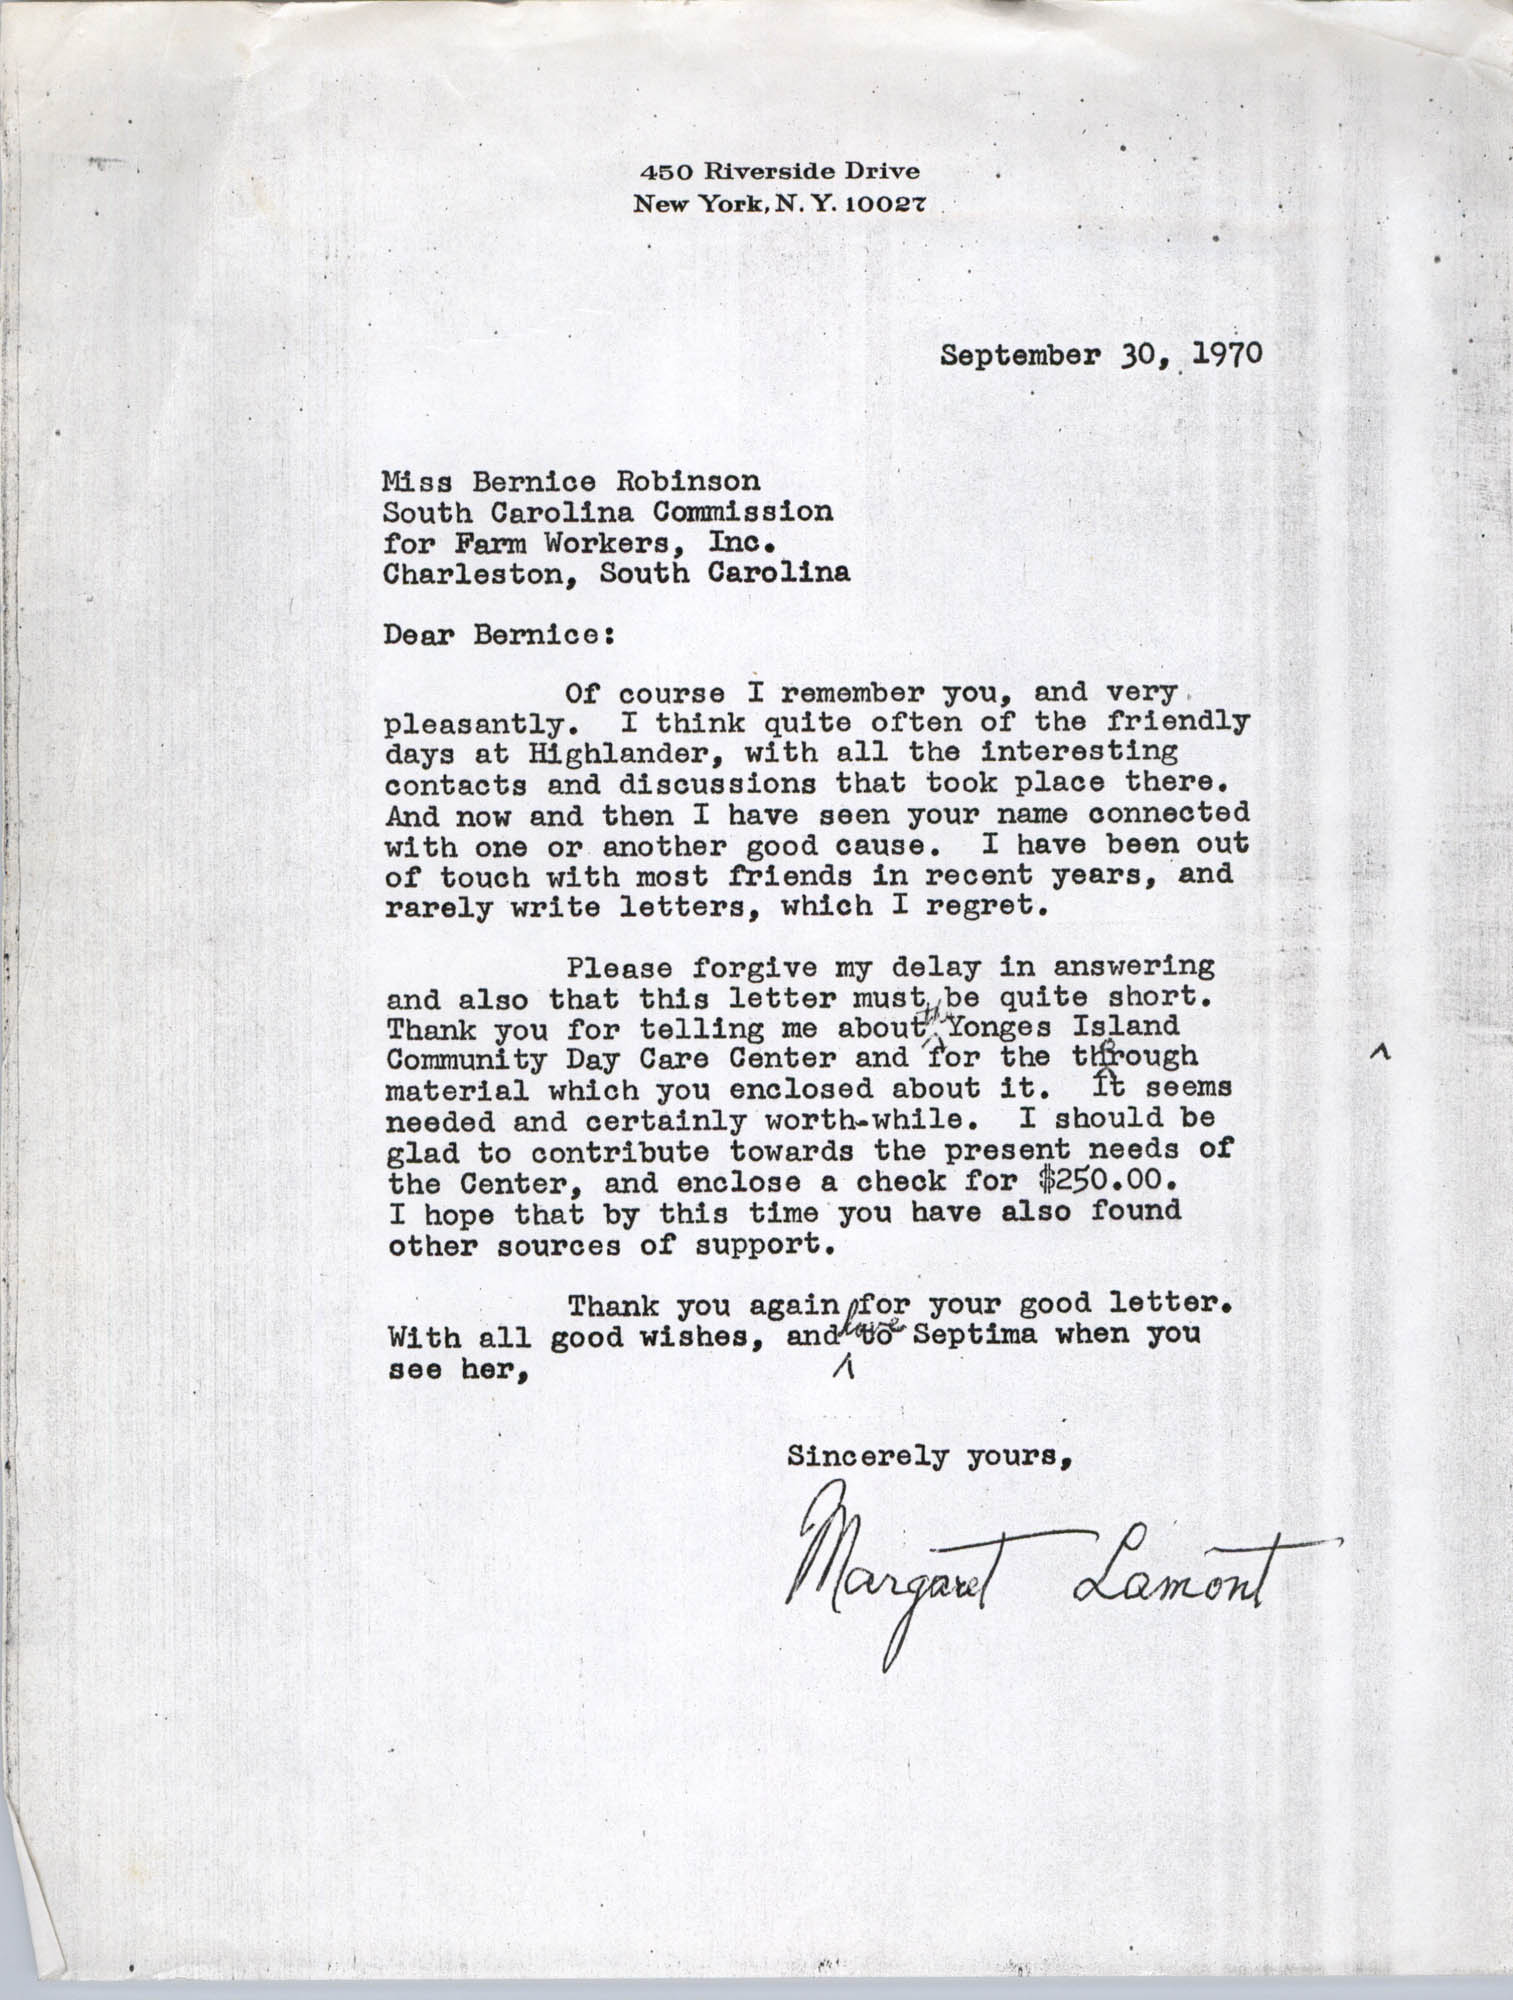 Letter from Margaret Lamont to Bernice Robinson, September 30, 1970